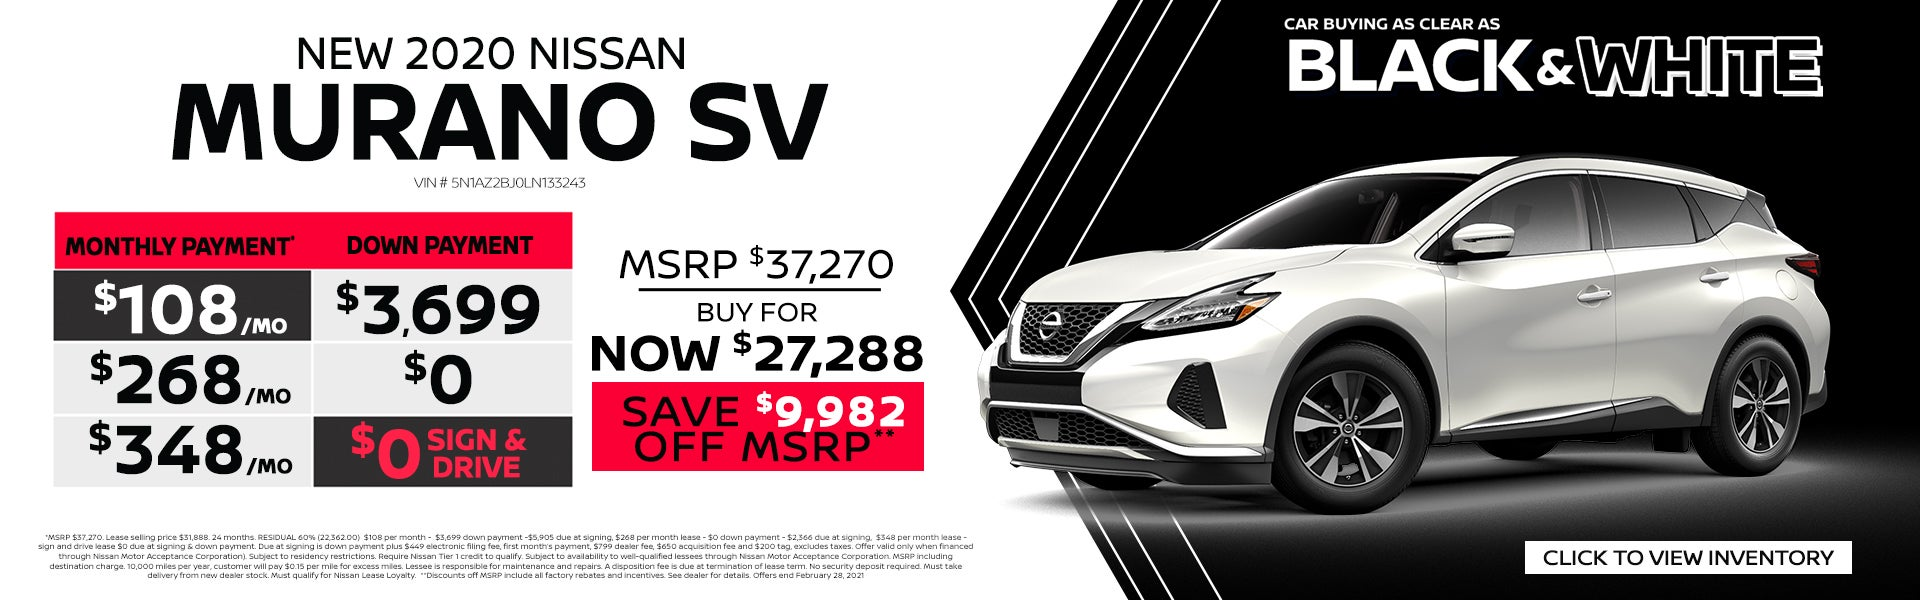 New 2020 Nissan Murano Sv Coral Springs Nissan Specials Coral Springs Fl